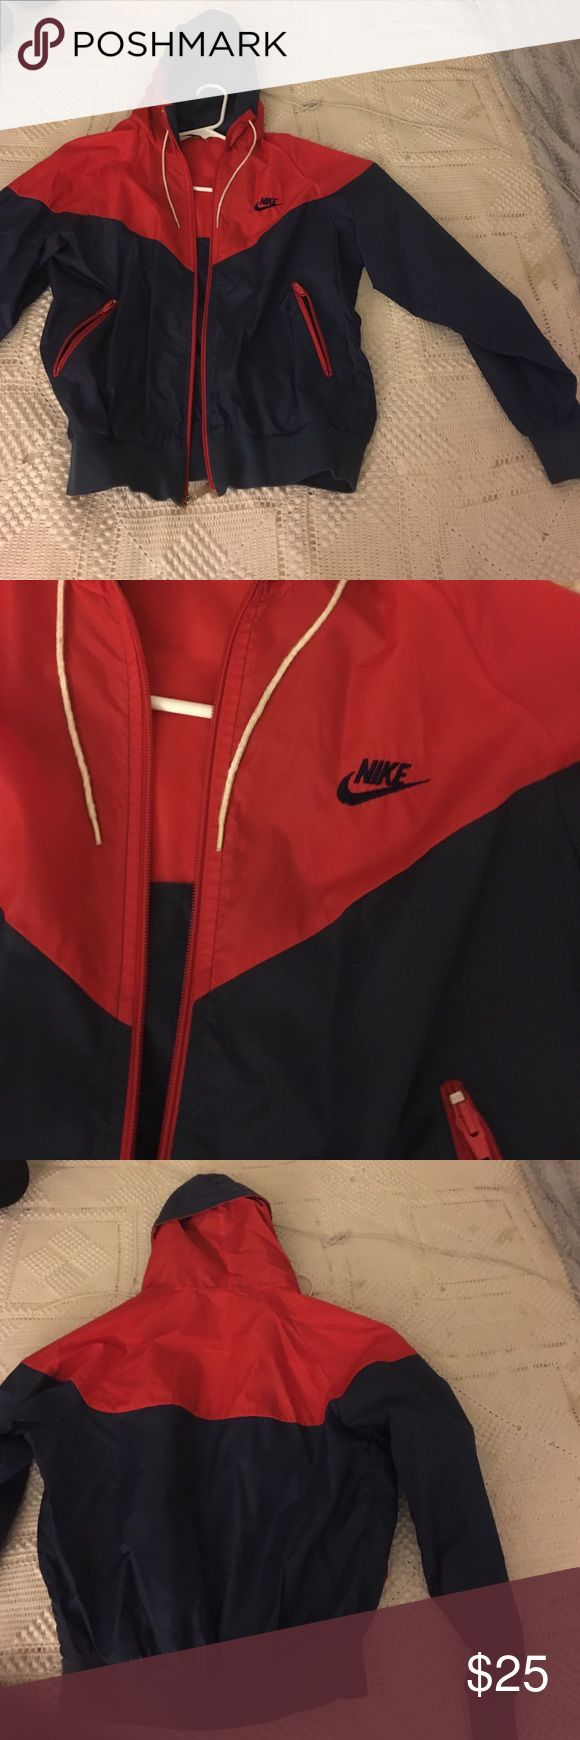 Nike Windbreaker Trendy blue and red Nike windbreaker jacket Nike Jackets & Coats